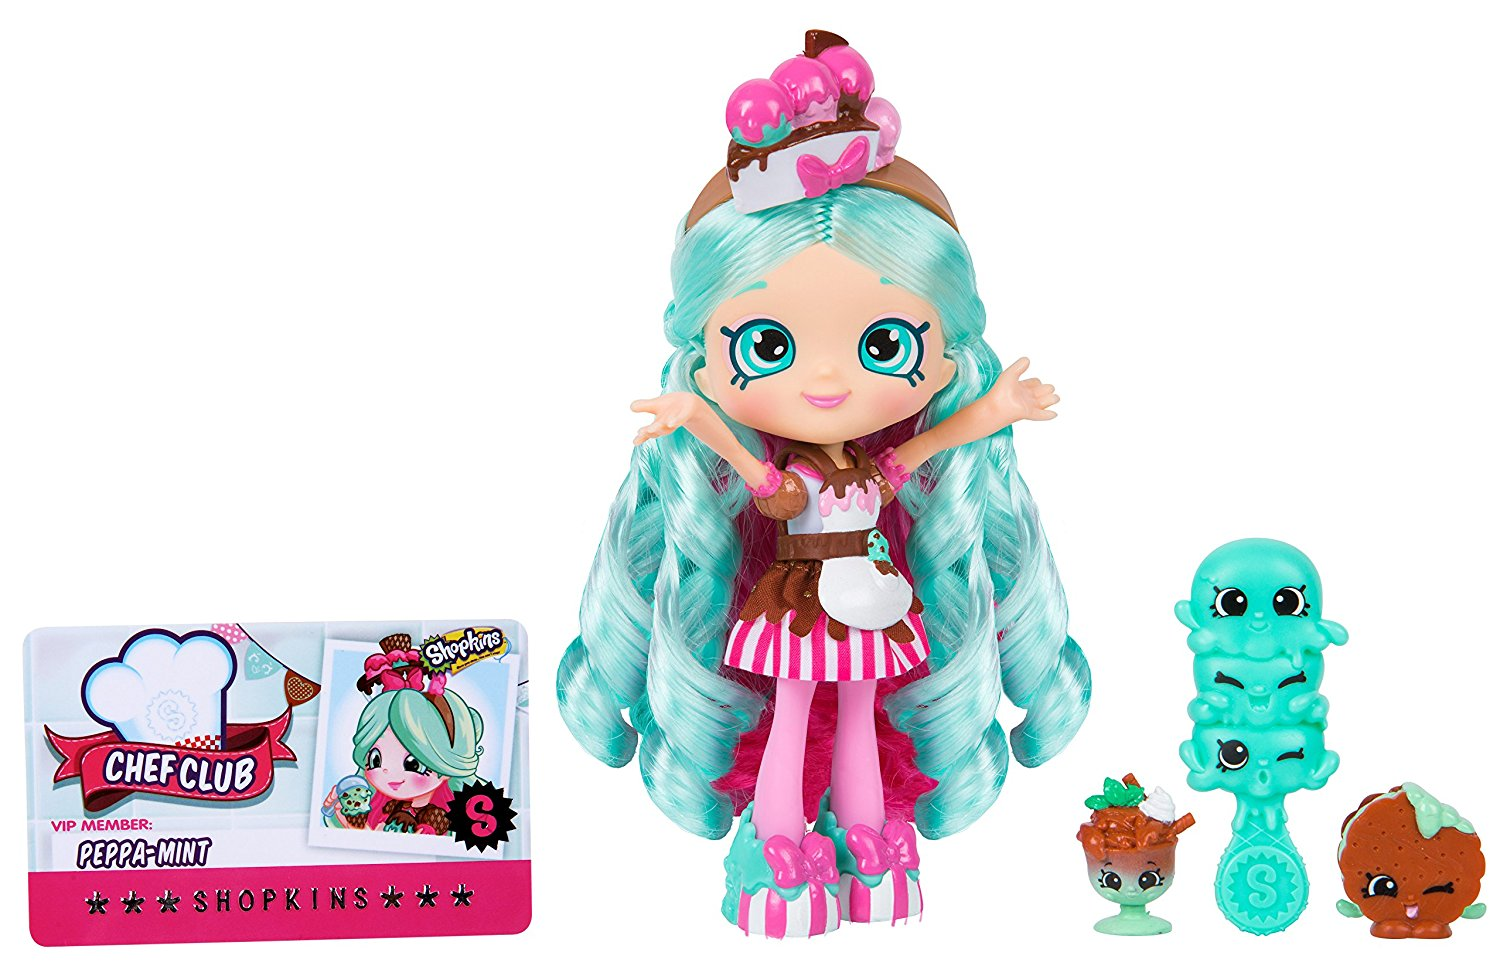 Dream Toys 2017 Shopkins Shoppies Chef Club Dolls - Peppamint